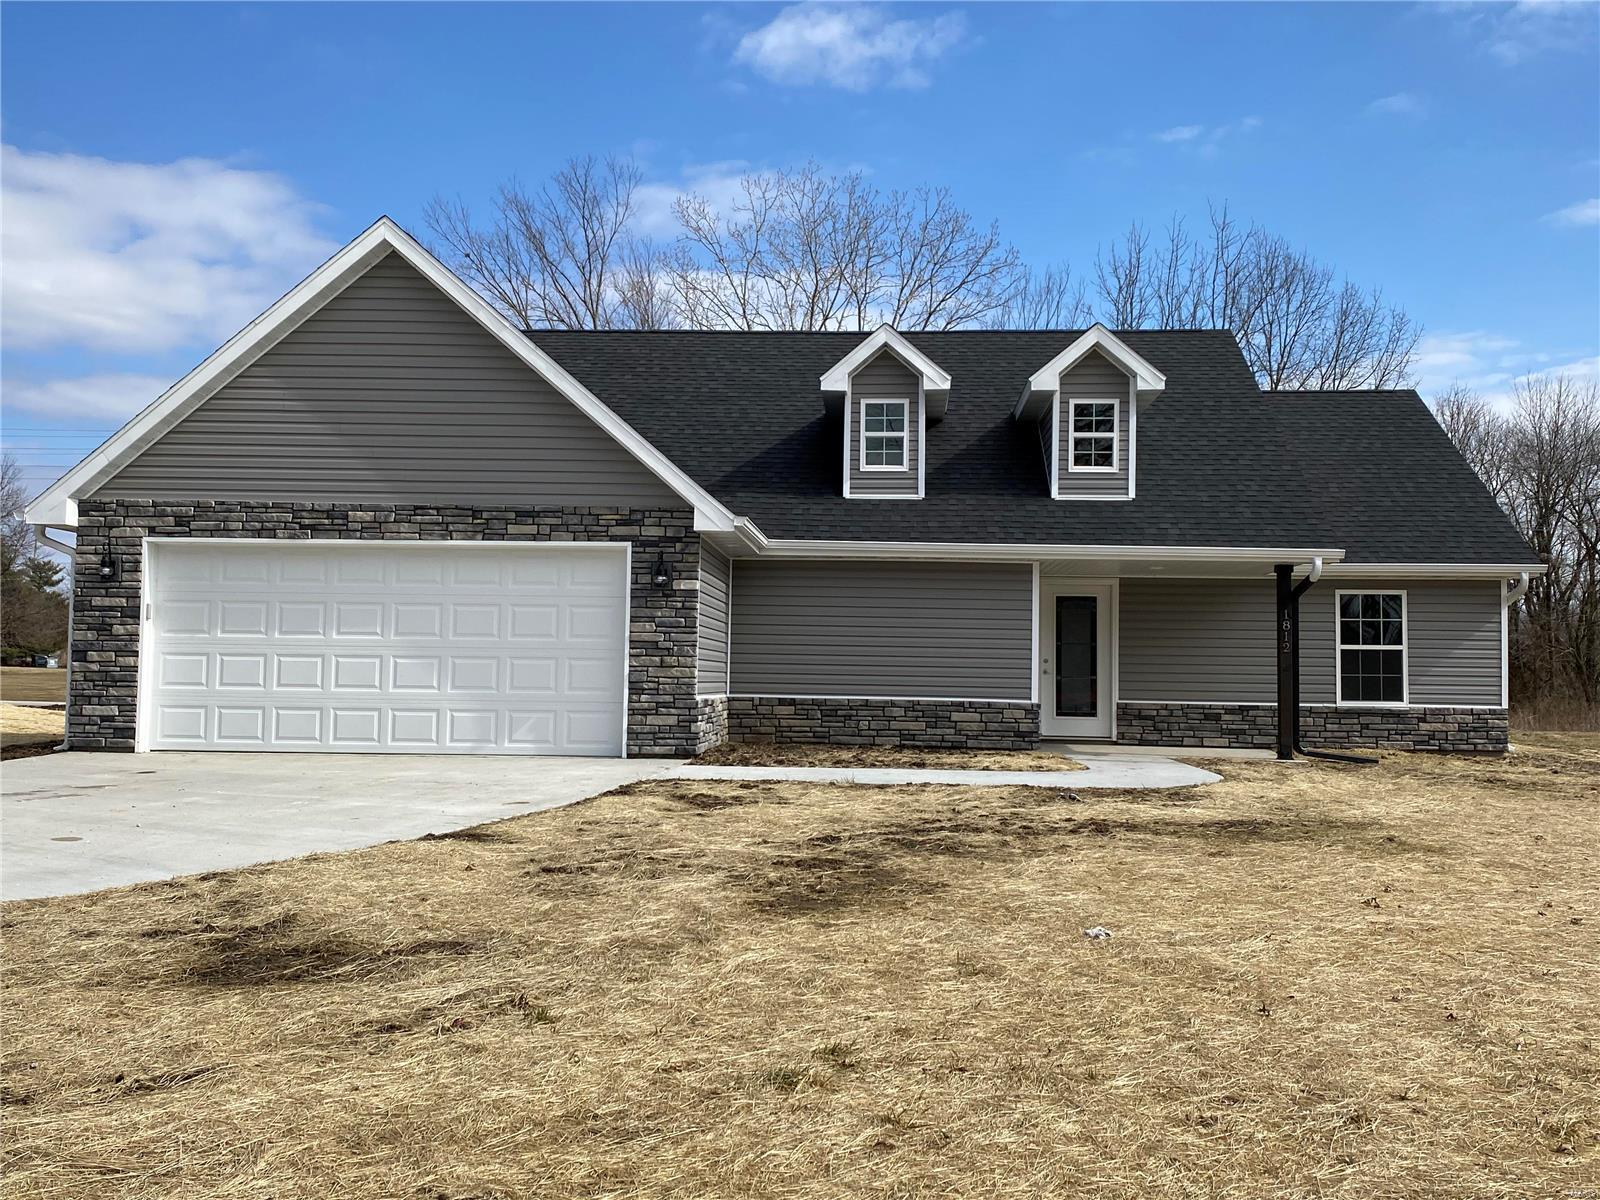 1812 S Morley Property Photo - Moberly, MO real estate listing